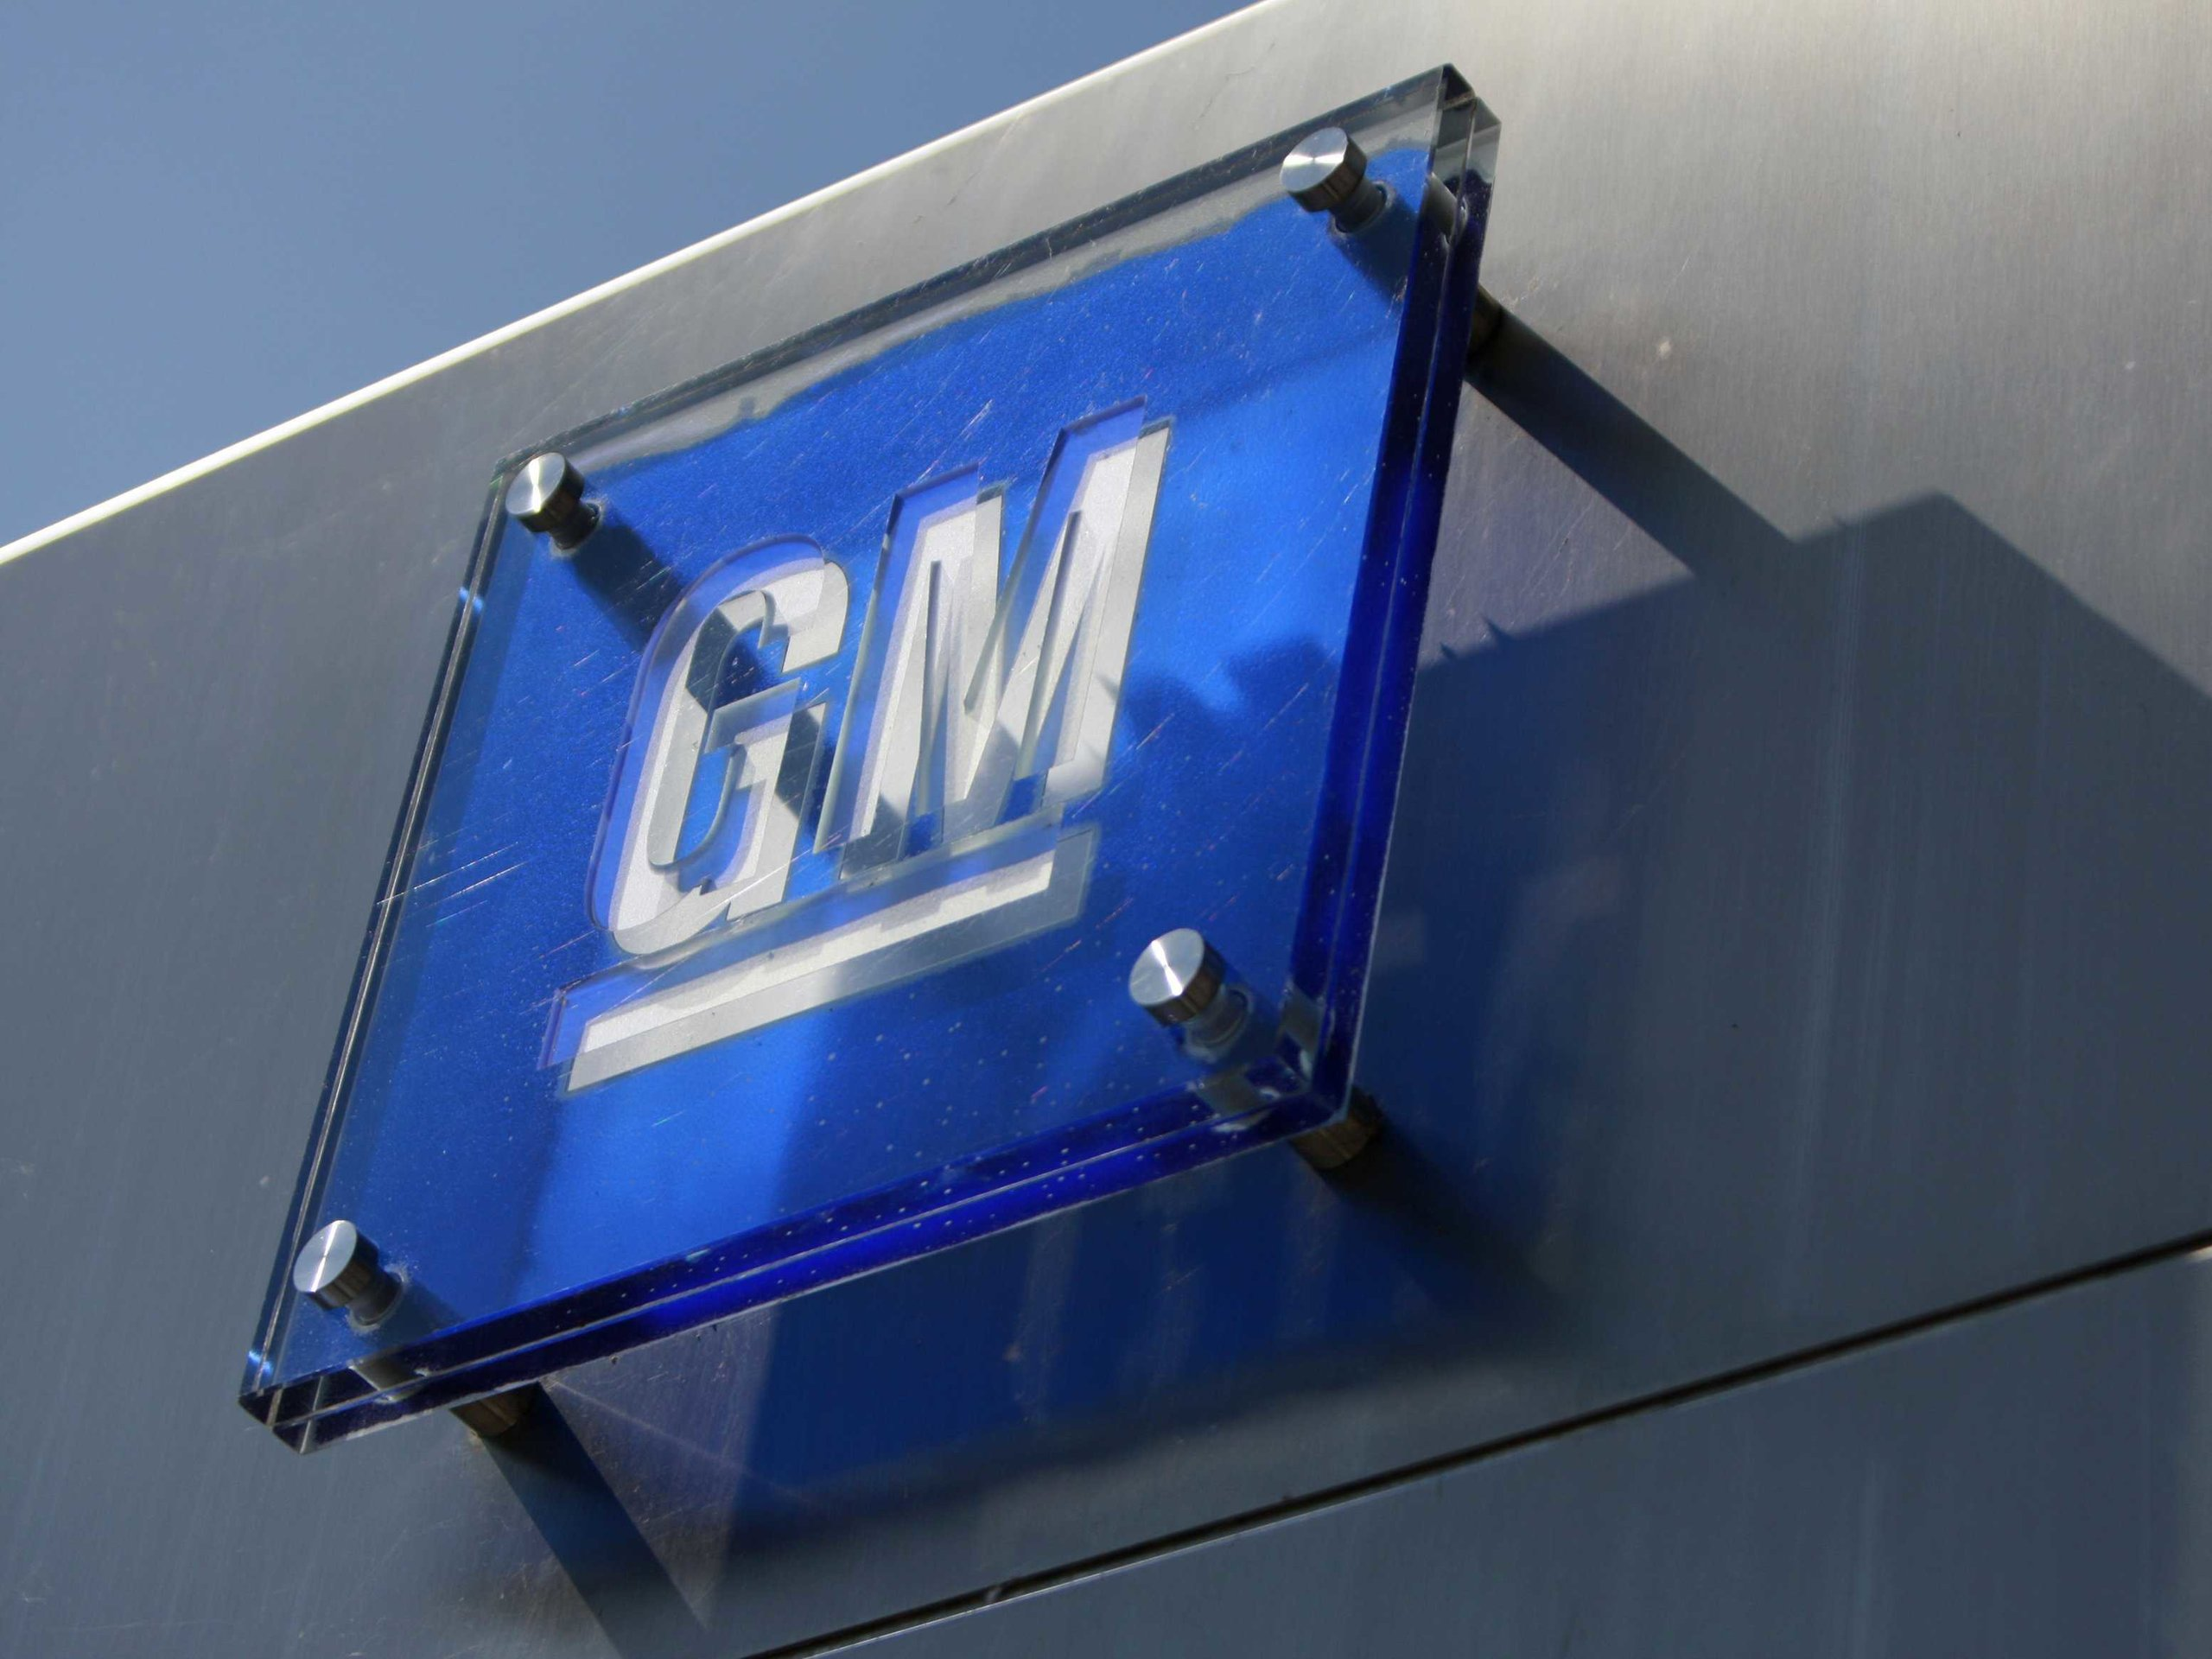 GM is adding core Google services to its vehicles